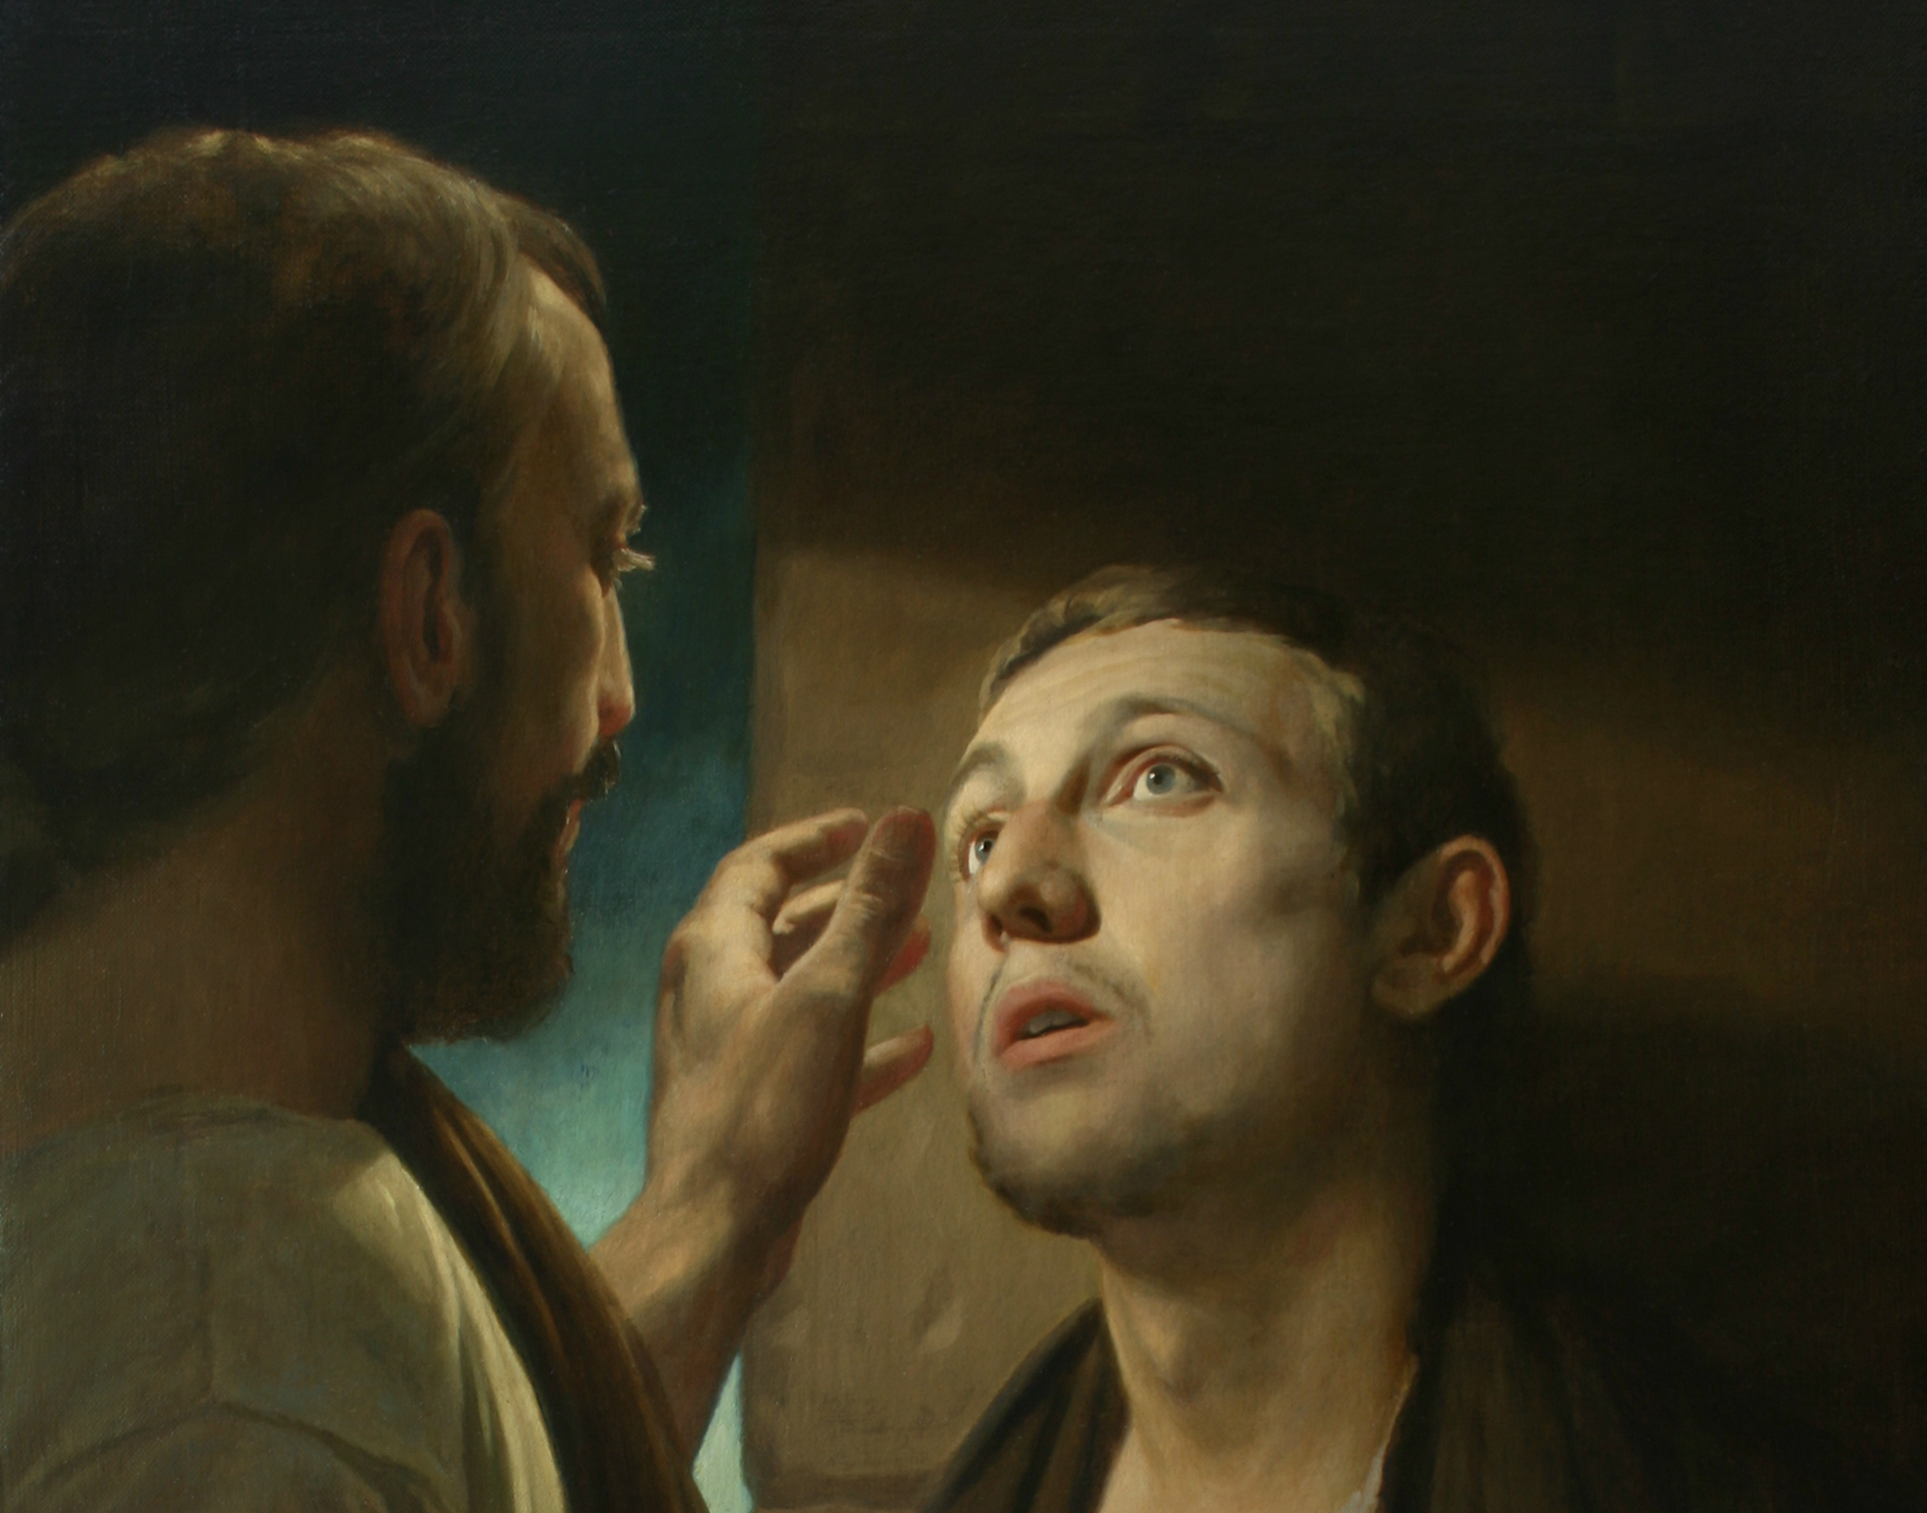 Christ and the pauper. Healing of the blind man